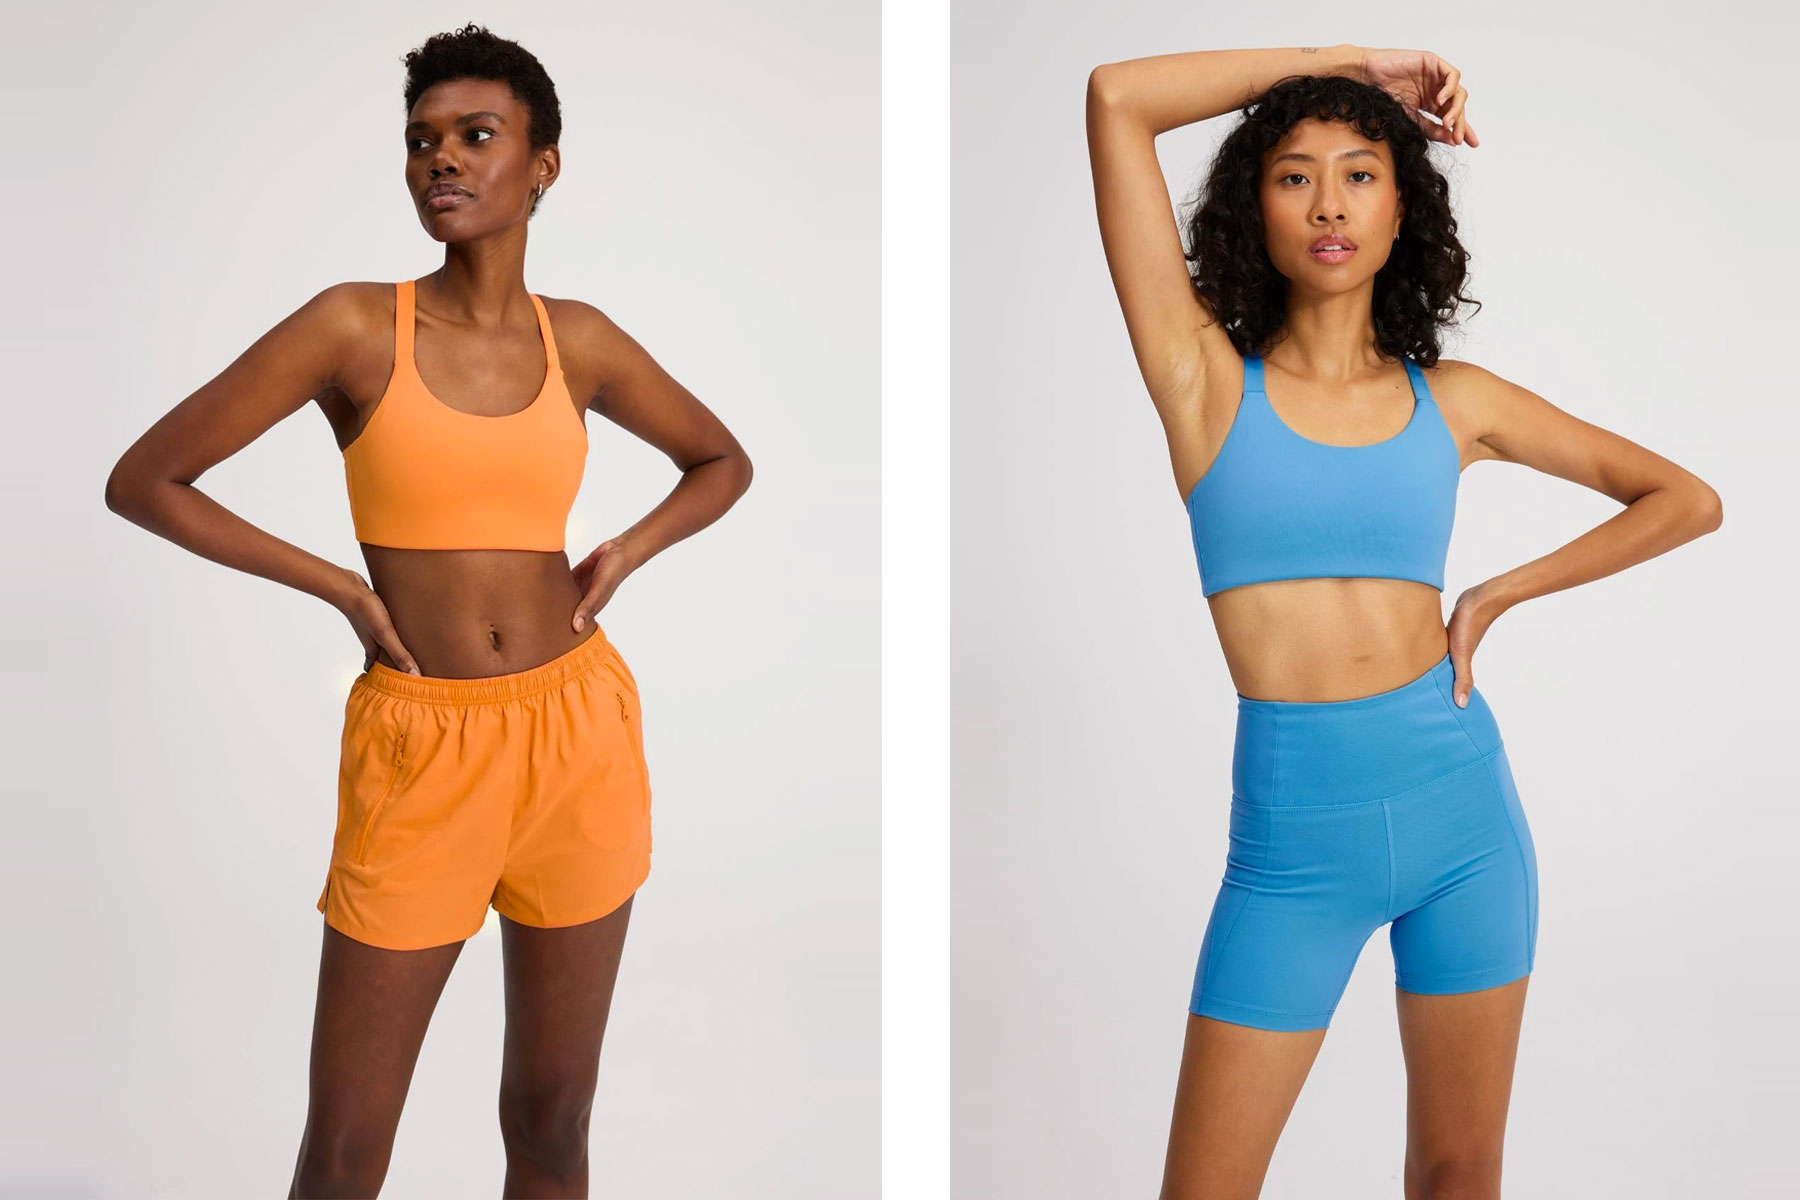 Women wearing orange and blue shorts and sports bras